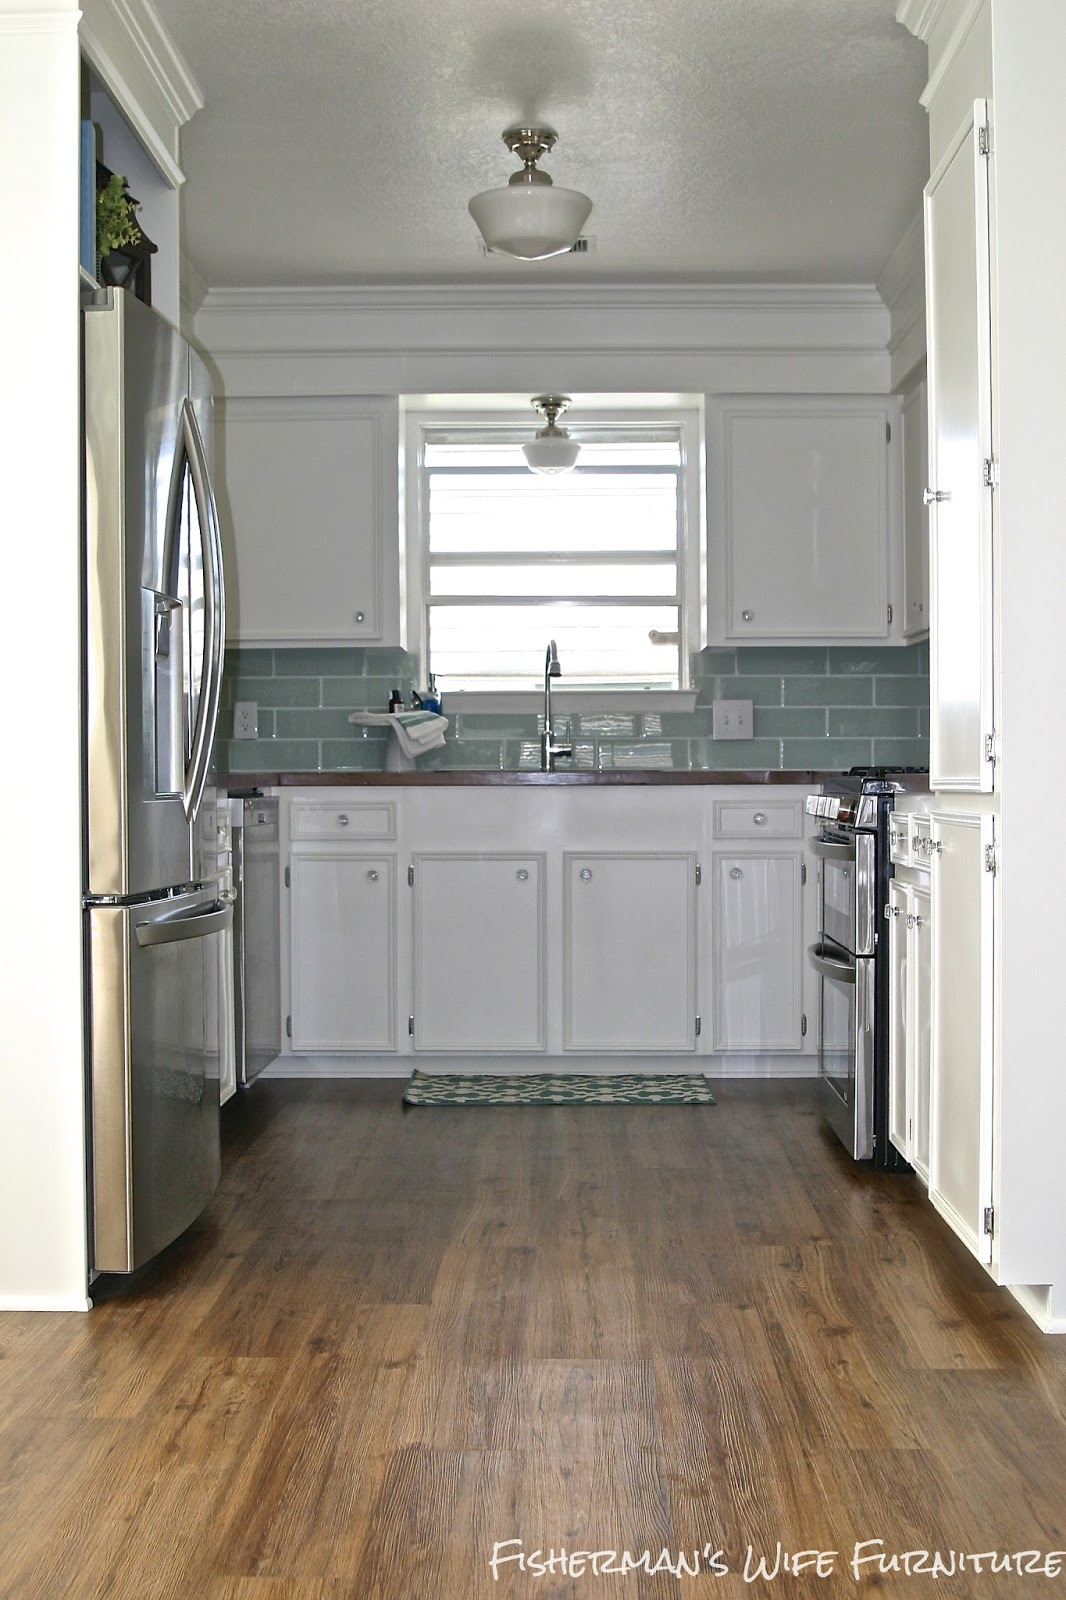 Remodelaholic | Small White Kitchen Makeover with Built-In ...